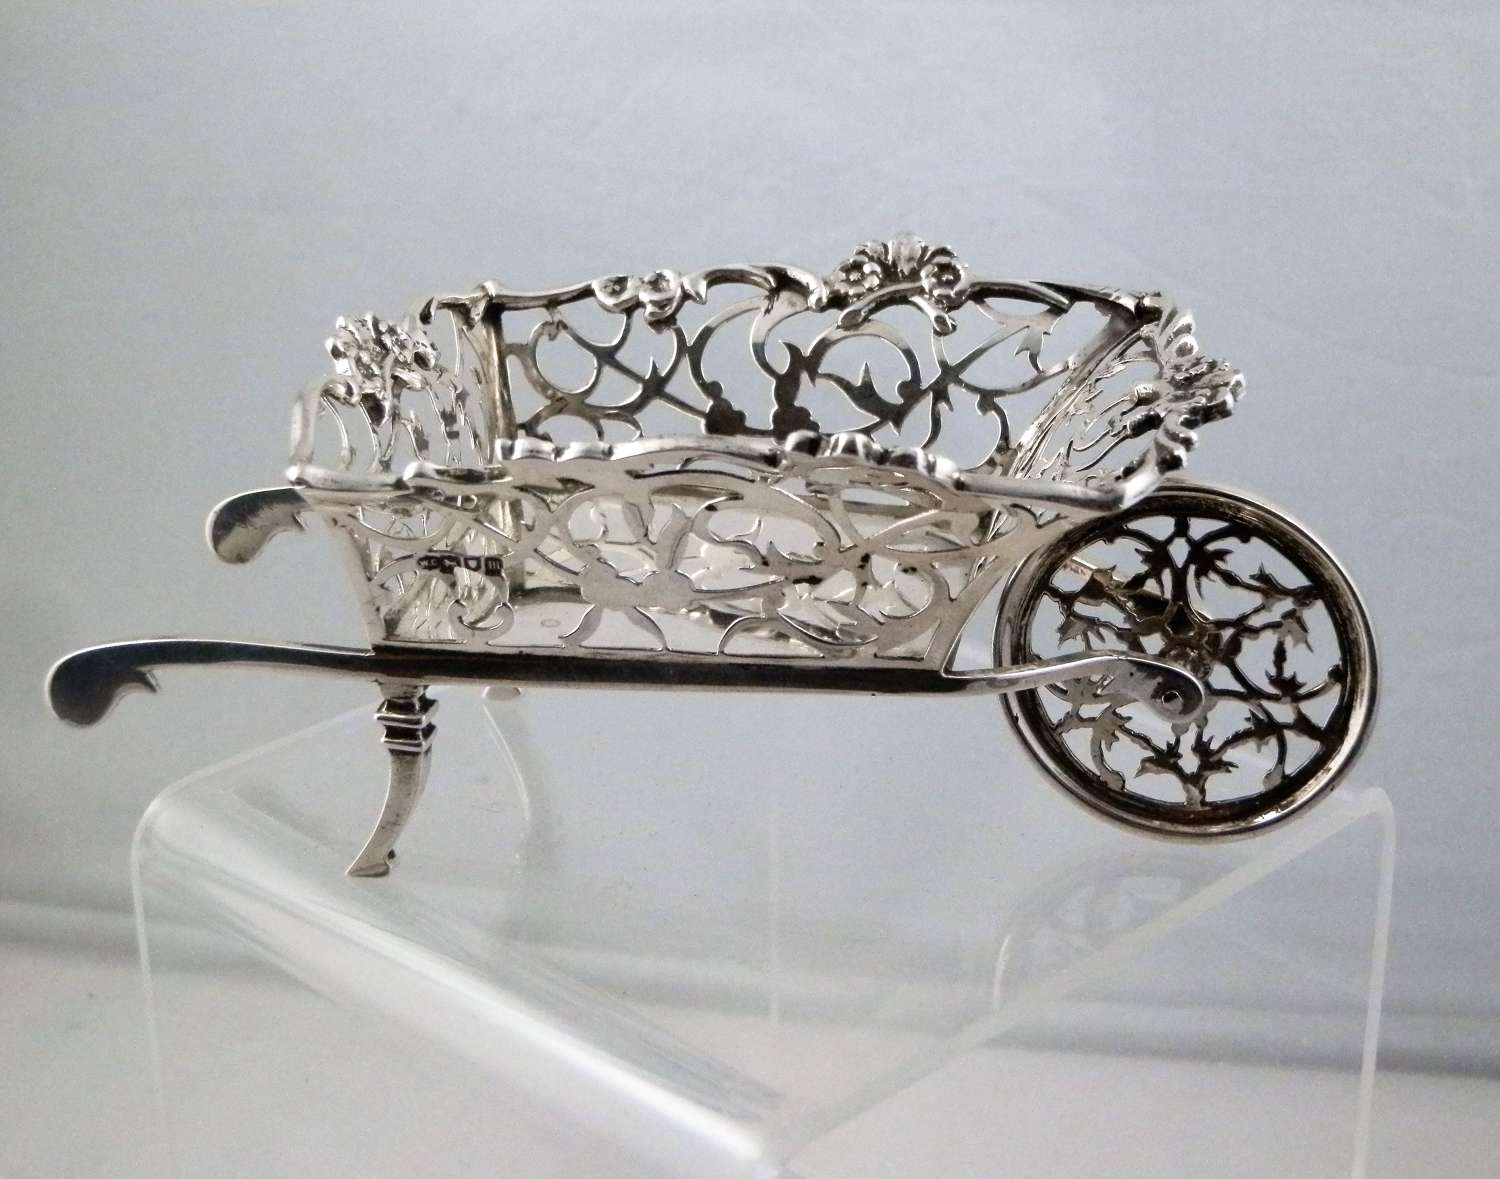 Silver fret work wheel barrow, William Comyns, 1907